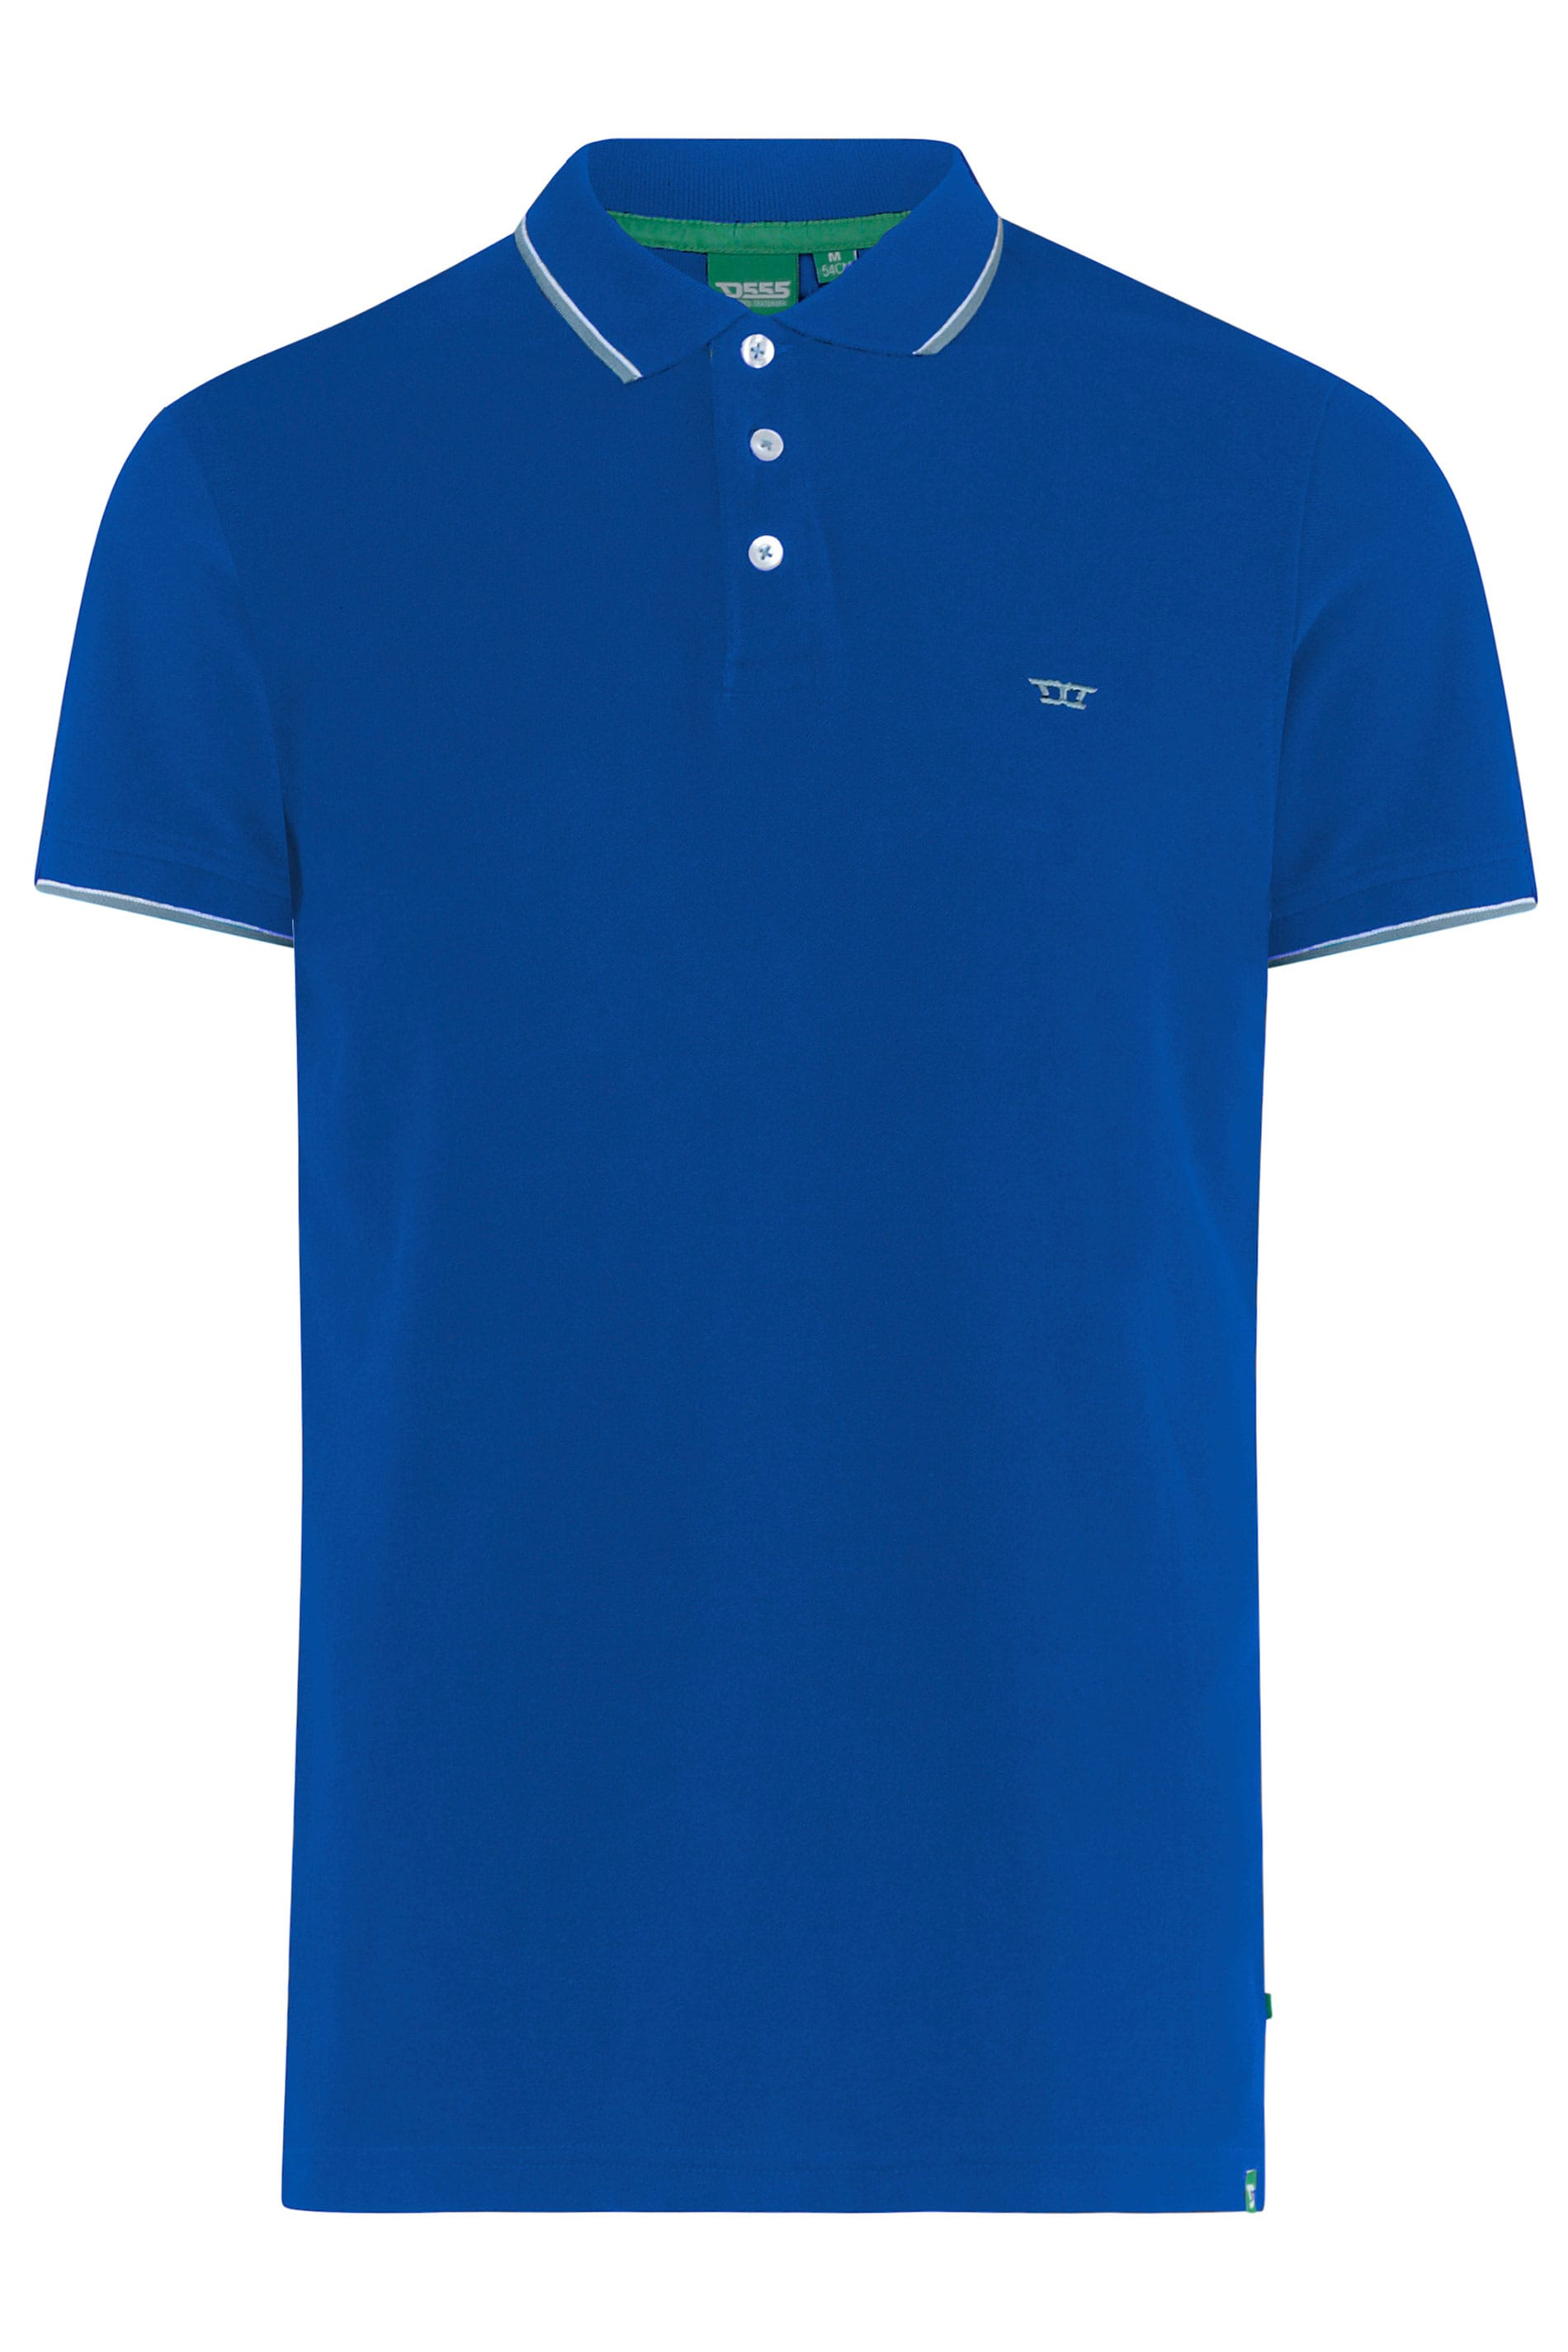 D555 Royal Blue Tipped Polo Shirt